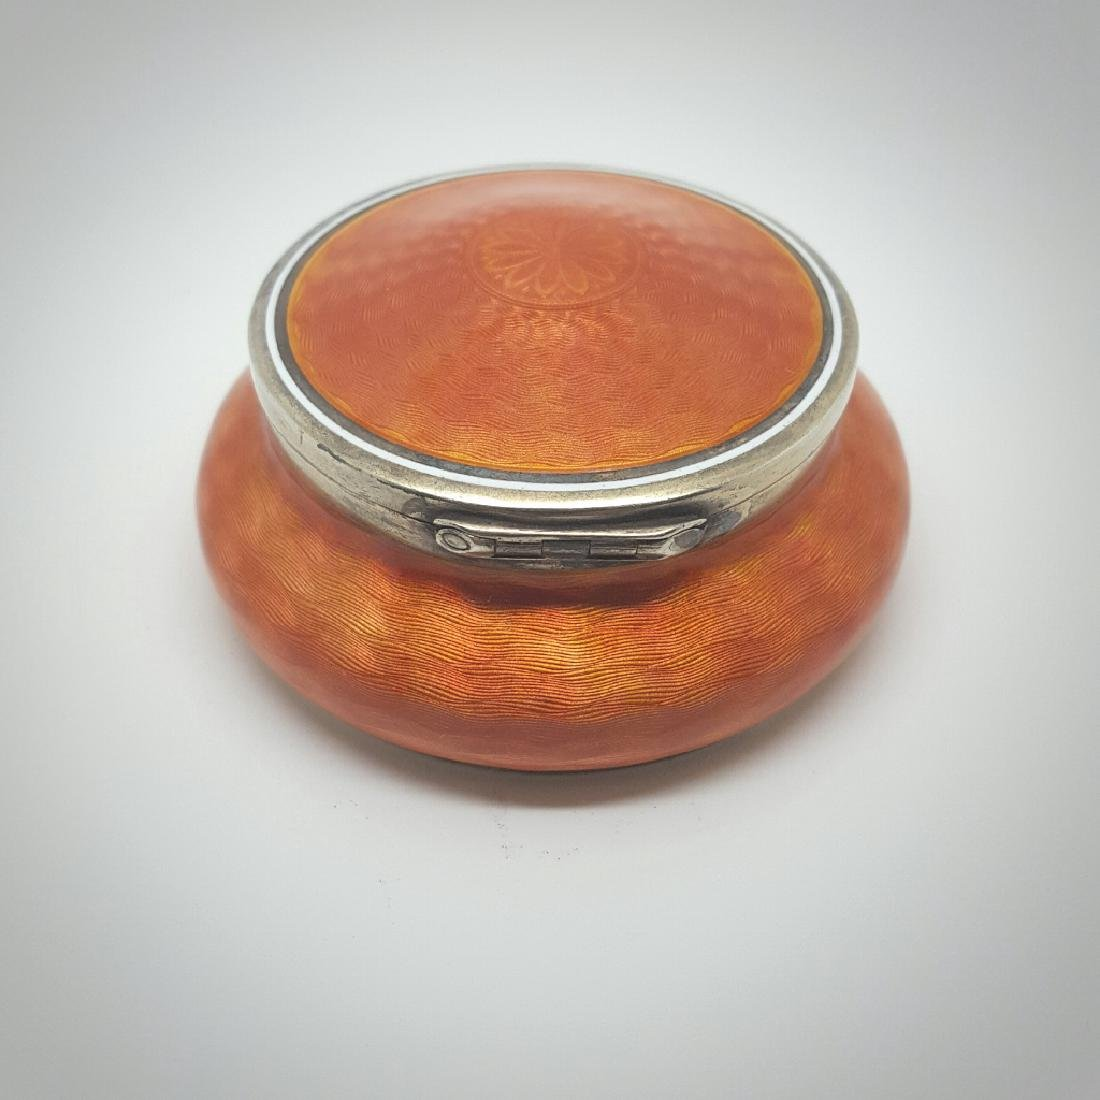 Faberge 84 Silver & Orange Guilloche Enamel Box